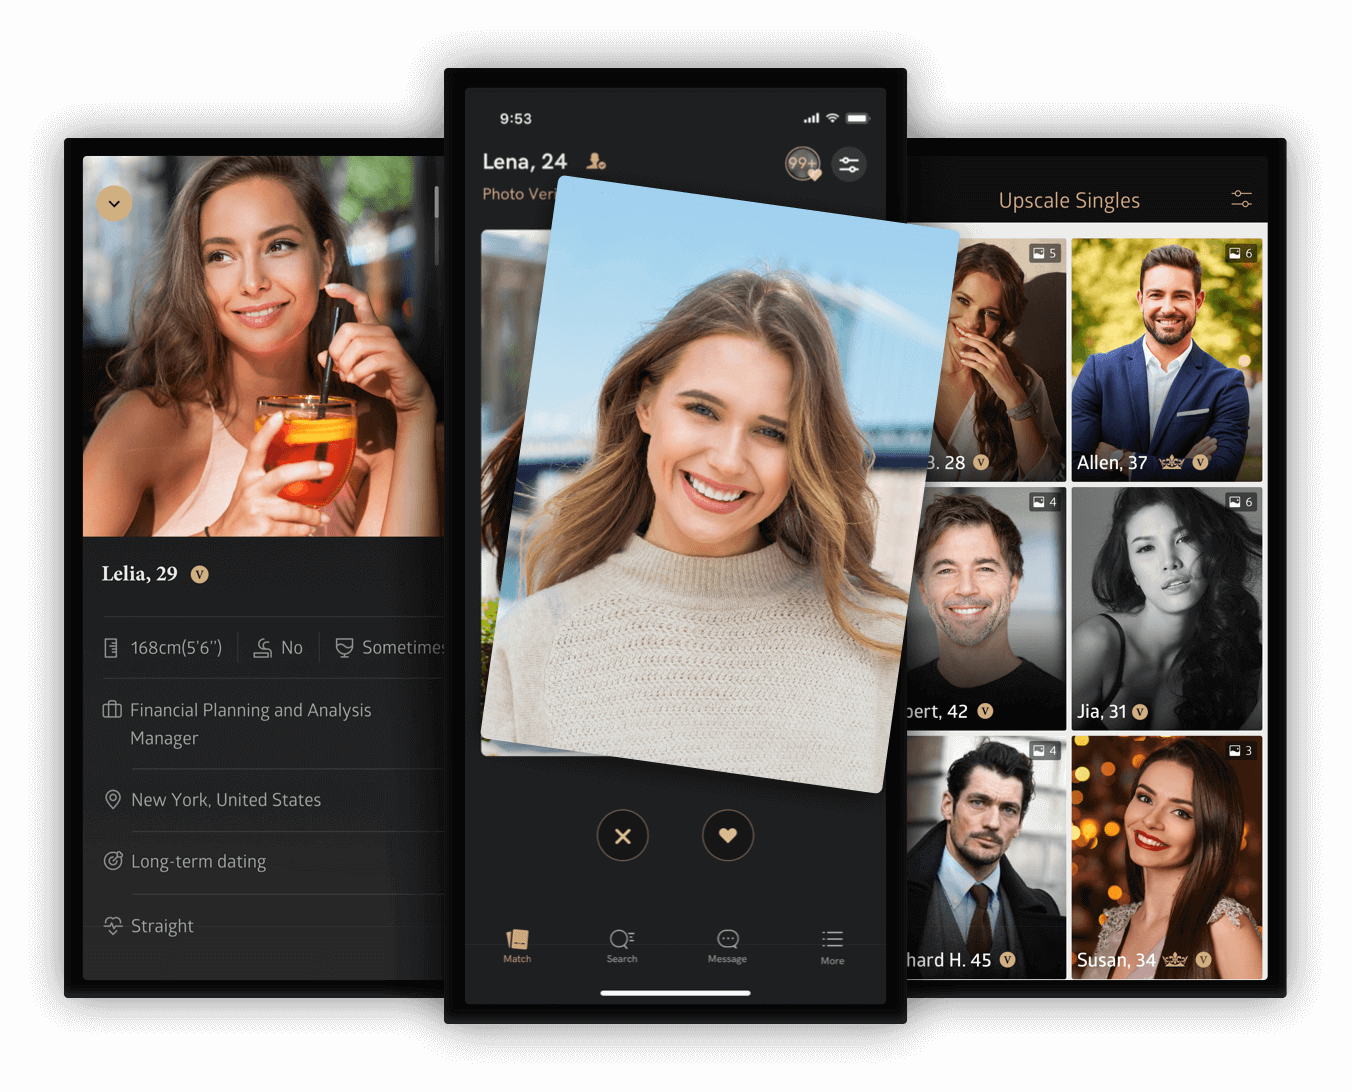 Meet new people on Luxy dating app